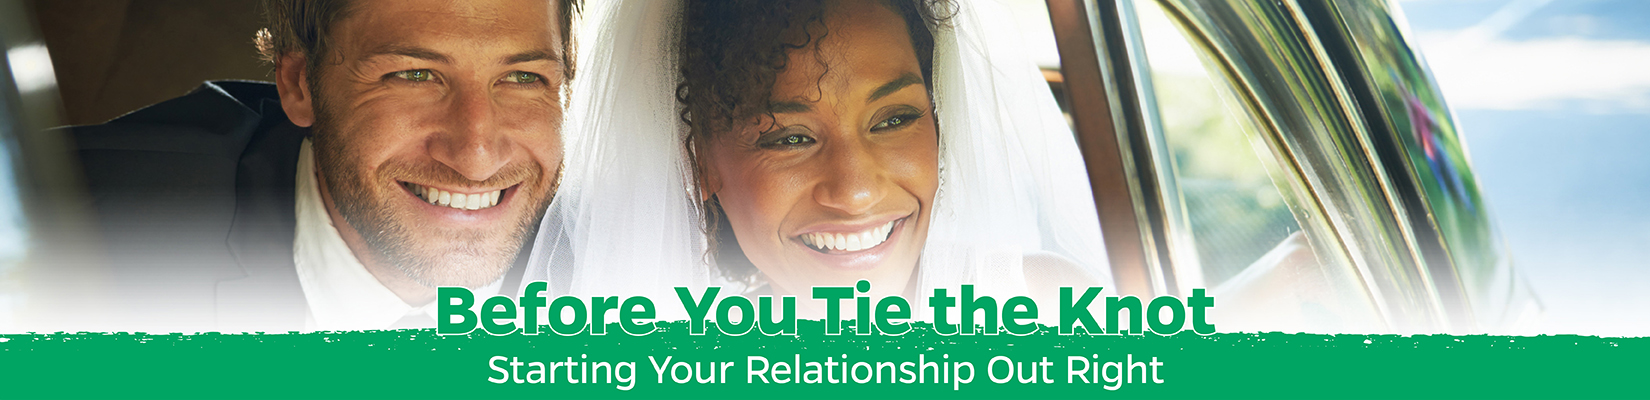 Before You Tie The Knot: Starting Your Relationship Right